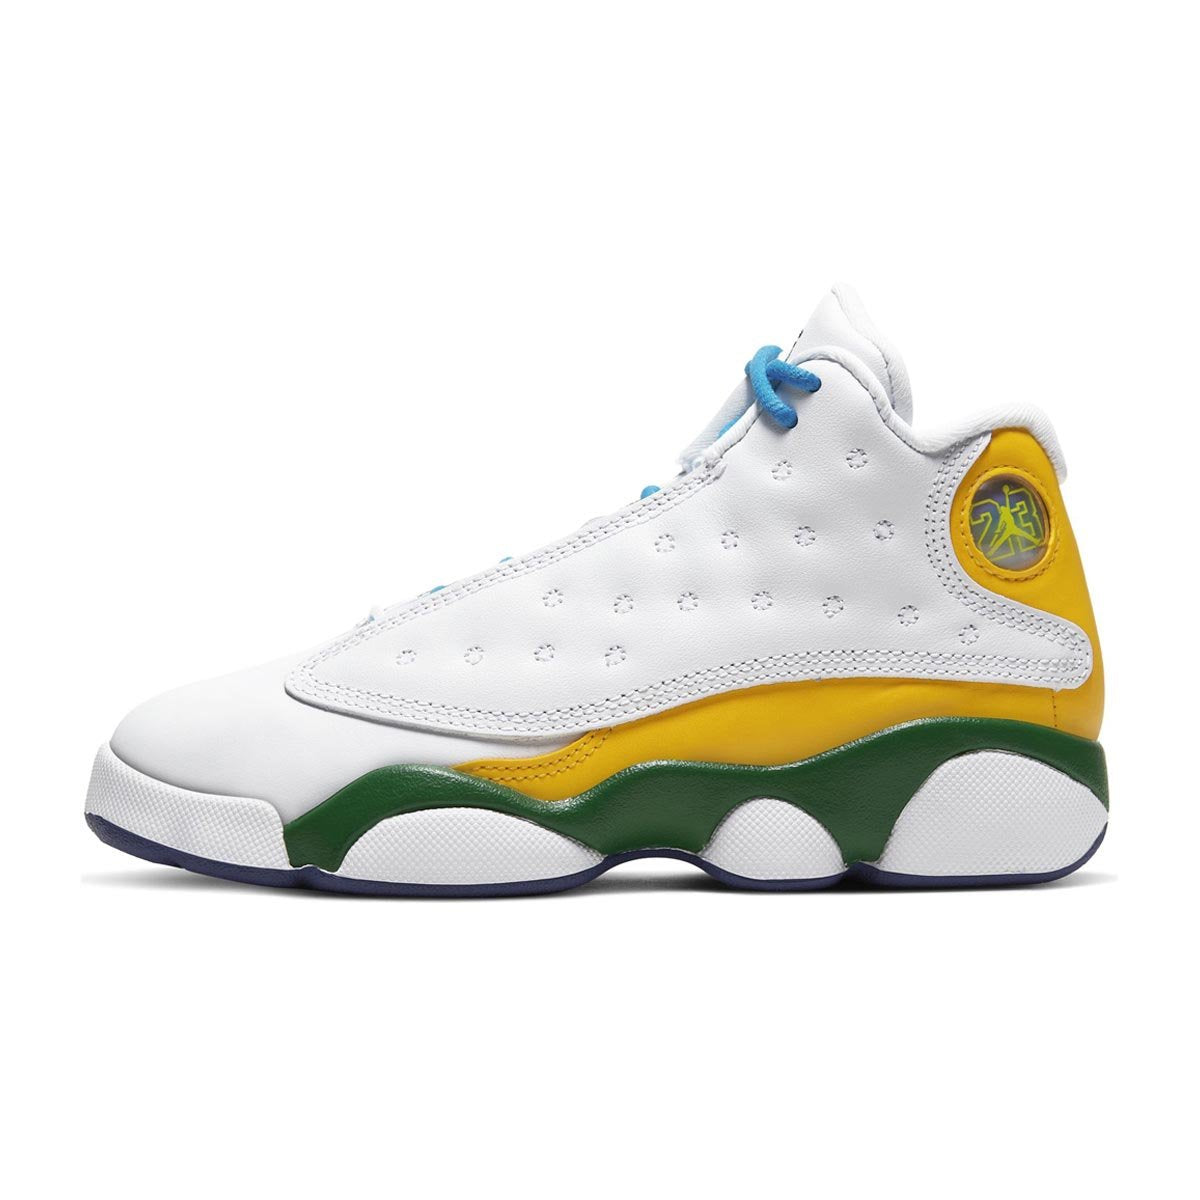 Little Kids Jordan 13 Retro